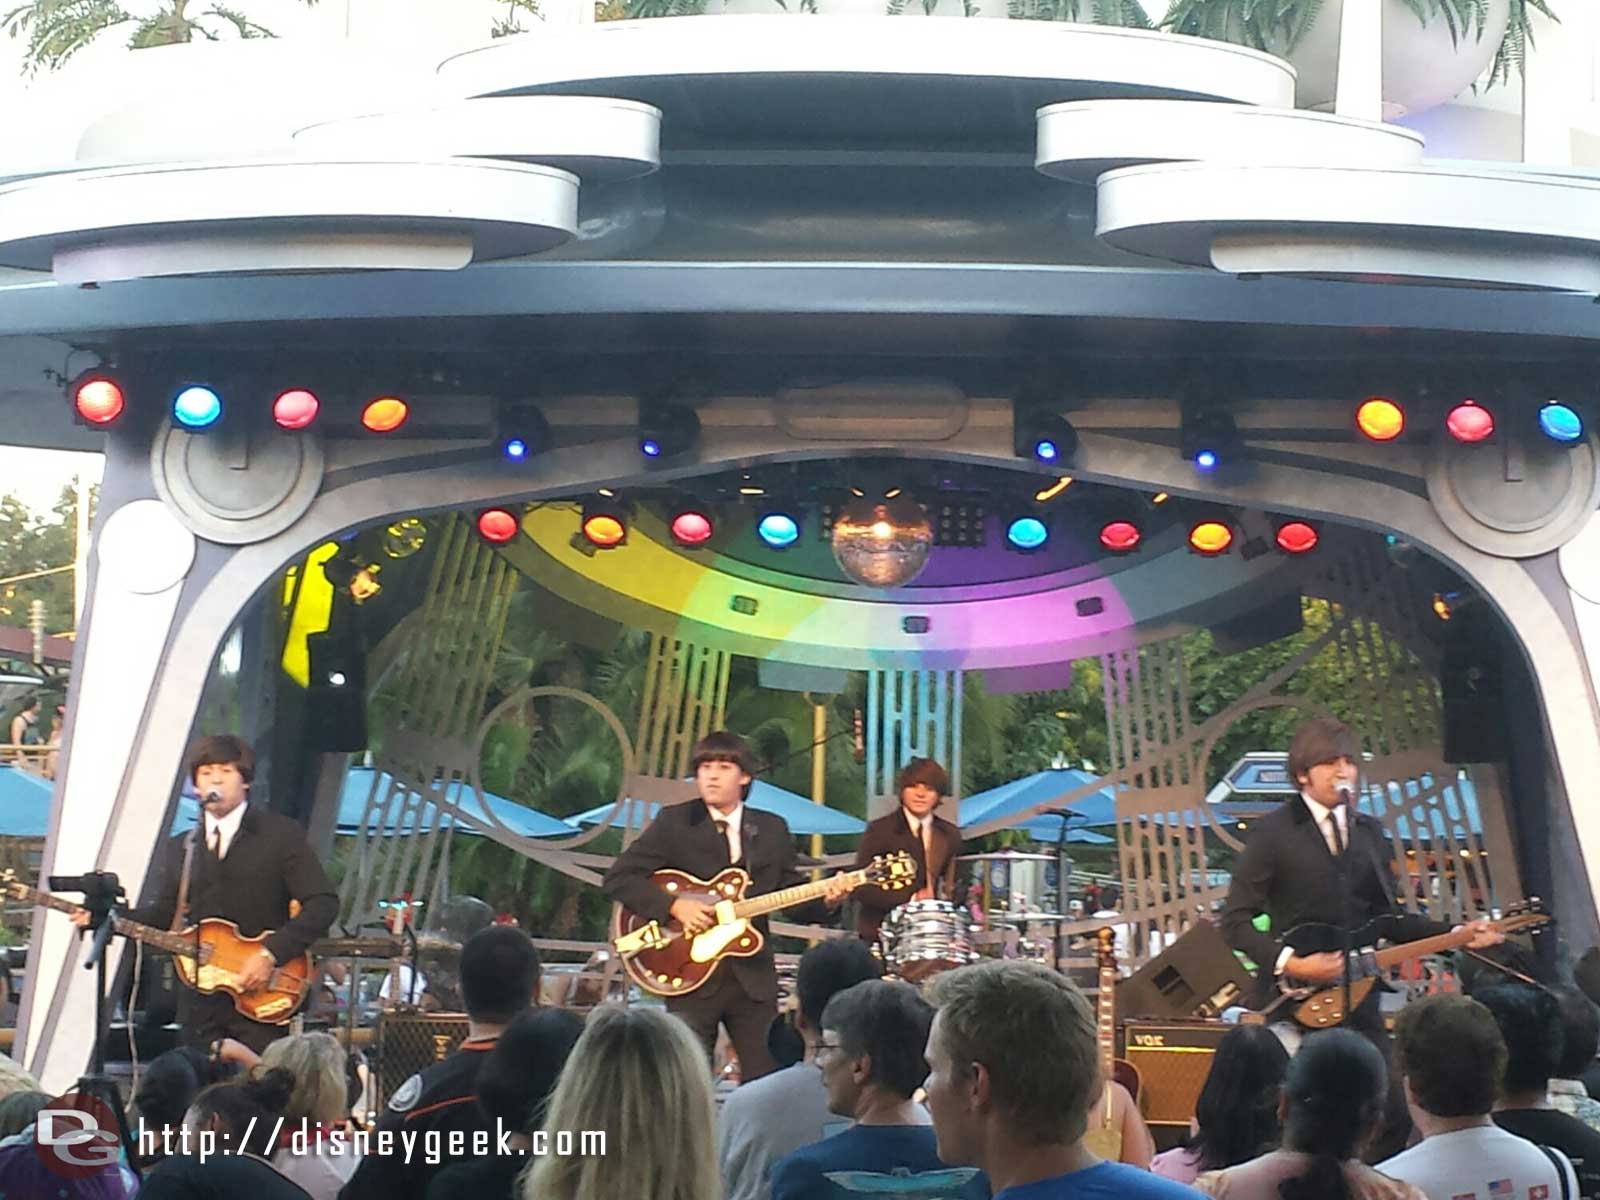 A Hard Day's Night a tribute to the Beatles are playing tonight at Tomorrowland Terrace #Disneyland